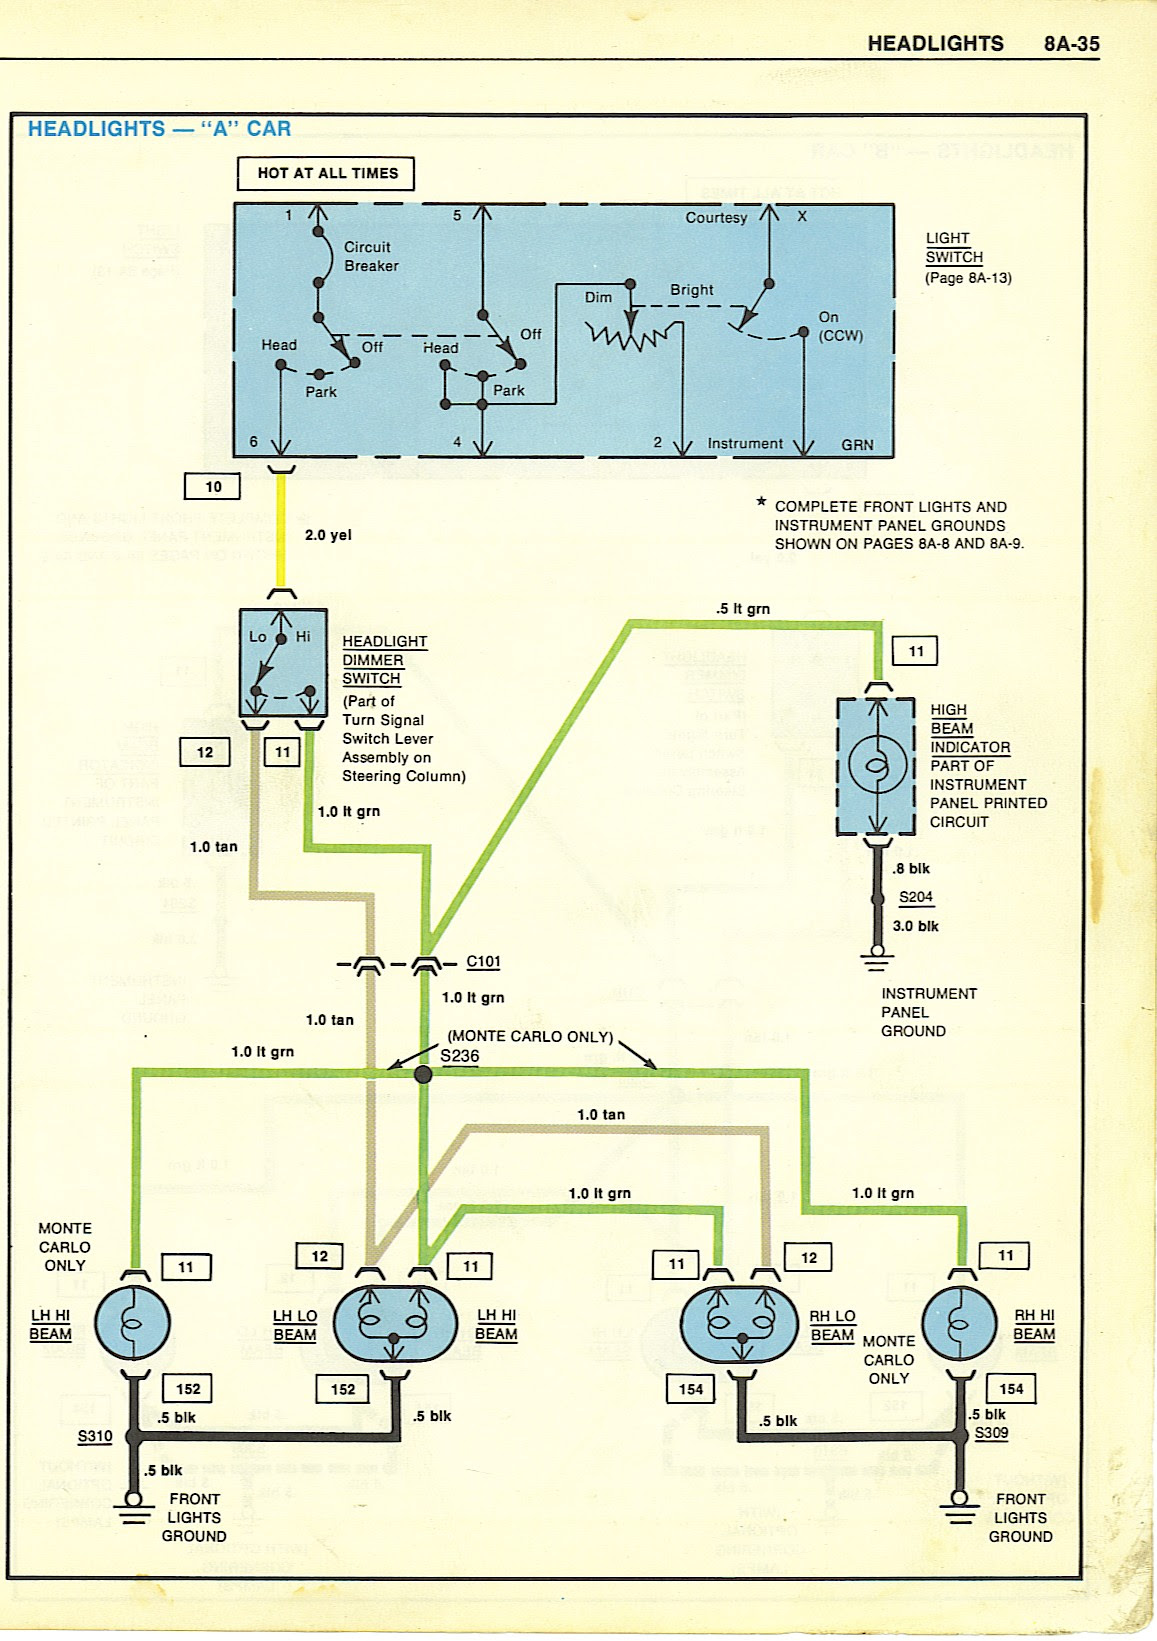 Diagram 1969 Cutlass Headlight Wiring Diagram Full Version Hd Quality Wiring Diagram Industrialdiagrams Nuitdeboutaix Fr